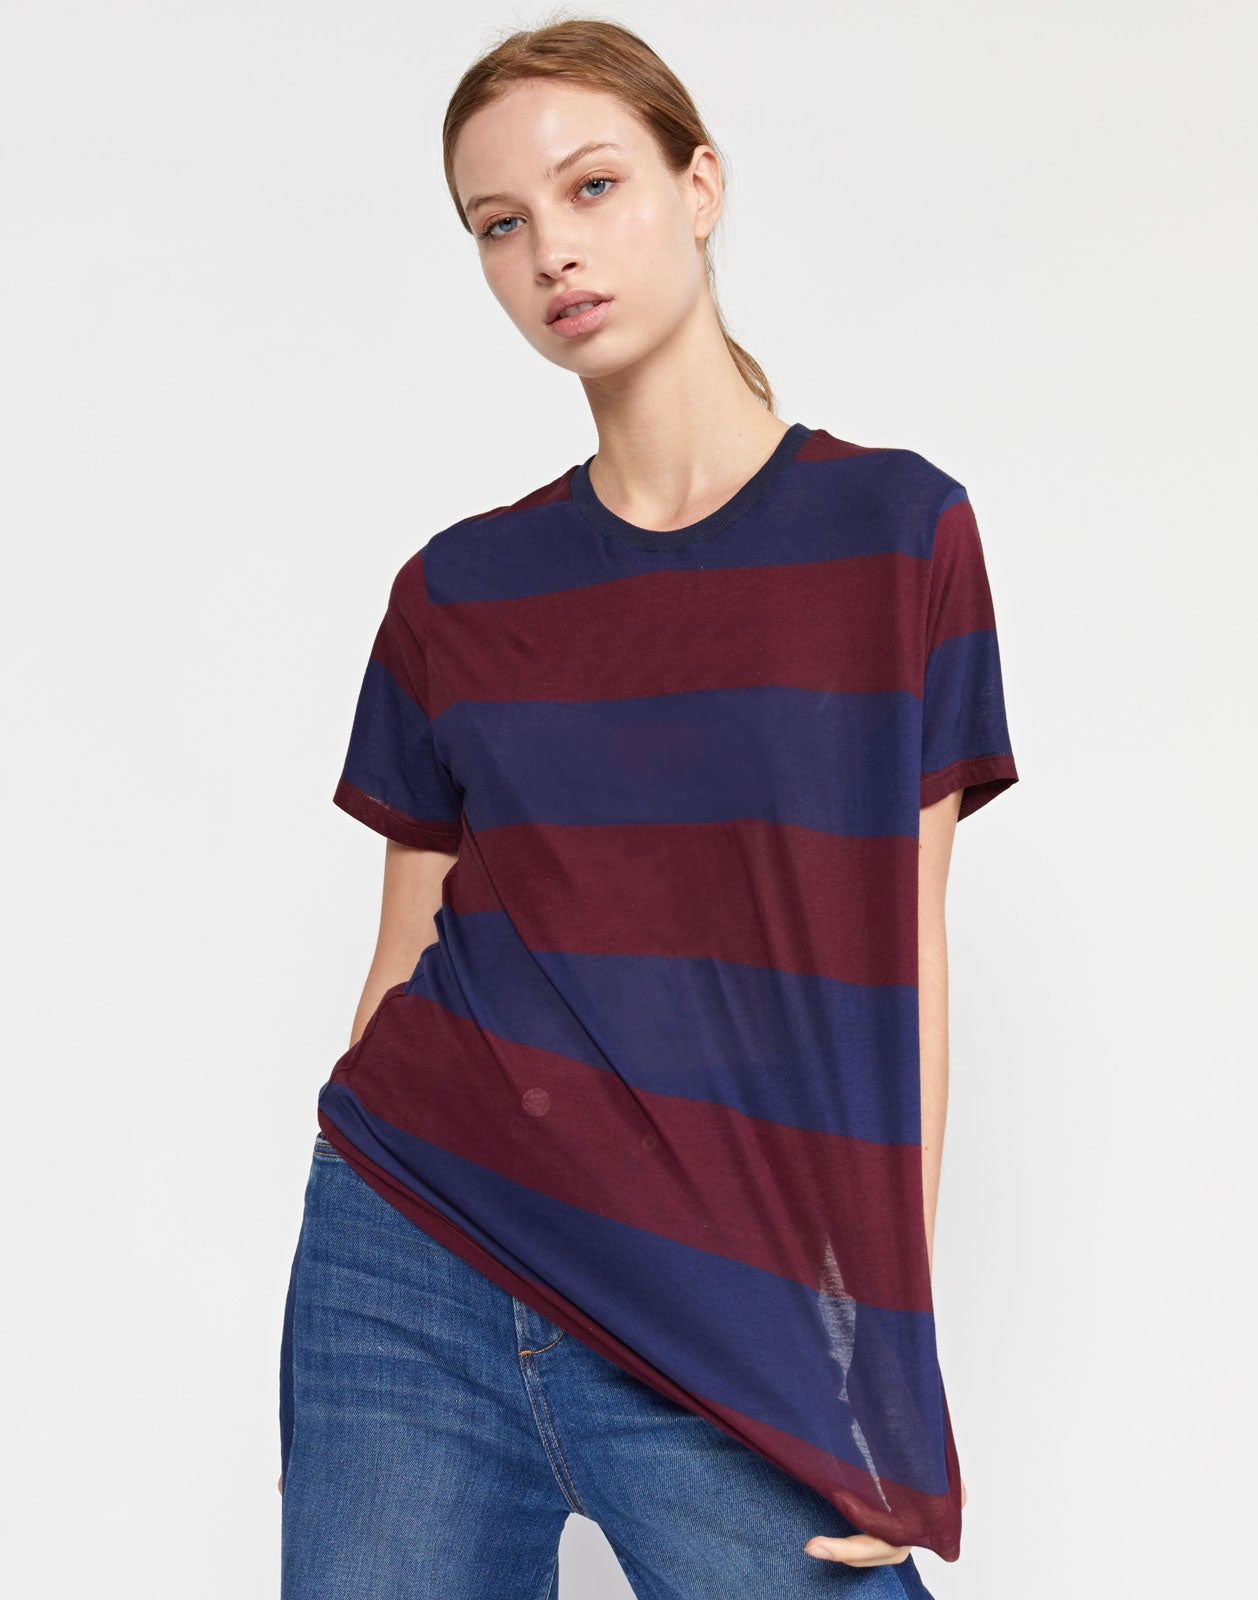 Printed Stripes Tee